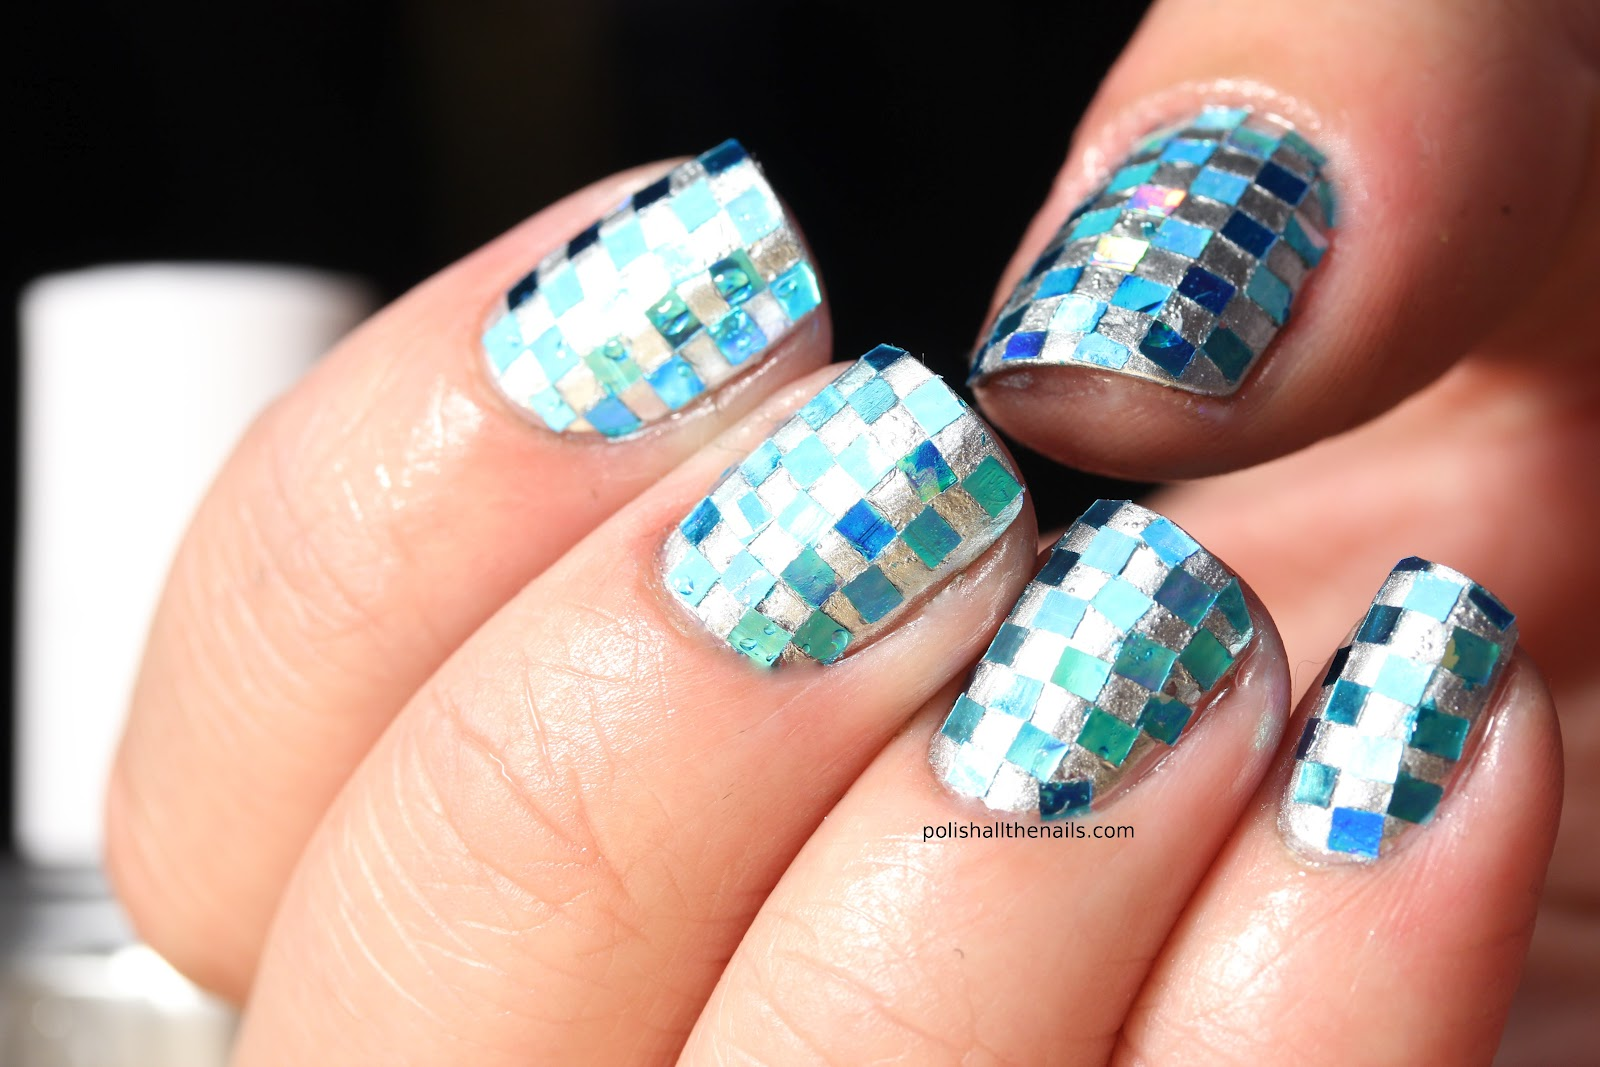 The Verdict: These were mistaken for nail decals by, like, three real people